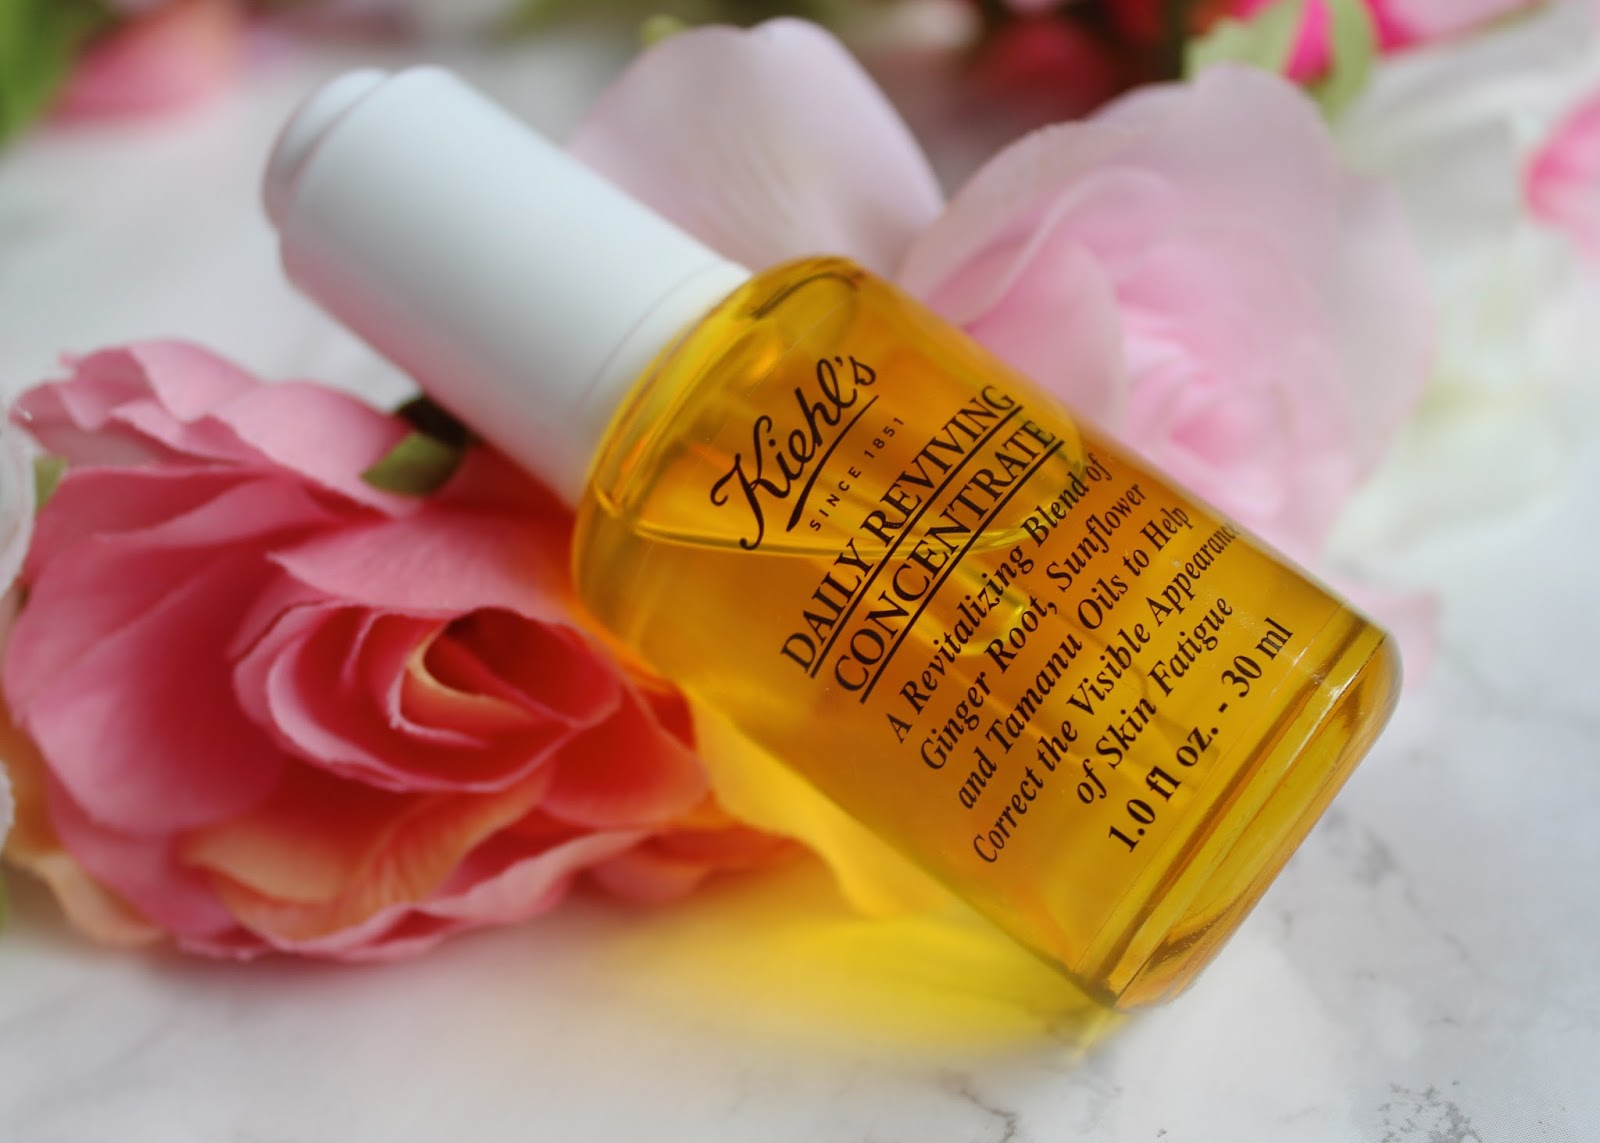 Daily Reviving Concentrate by Kiehls #22